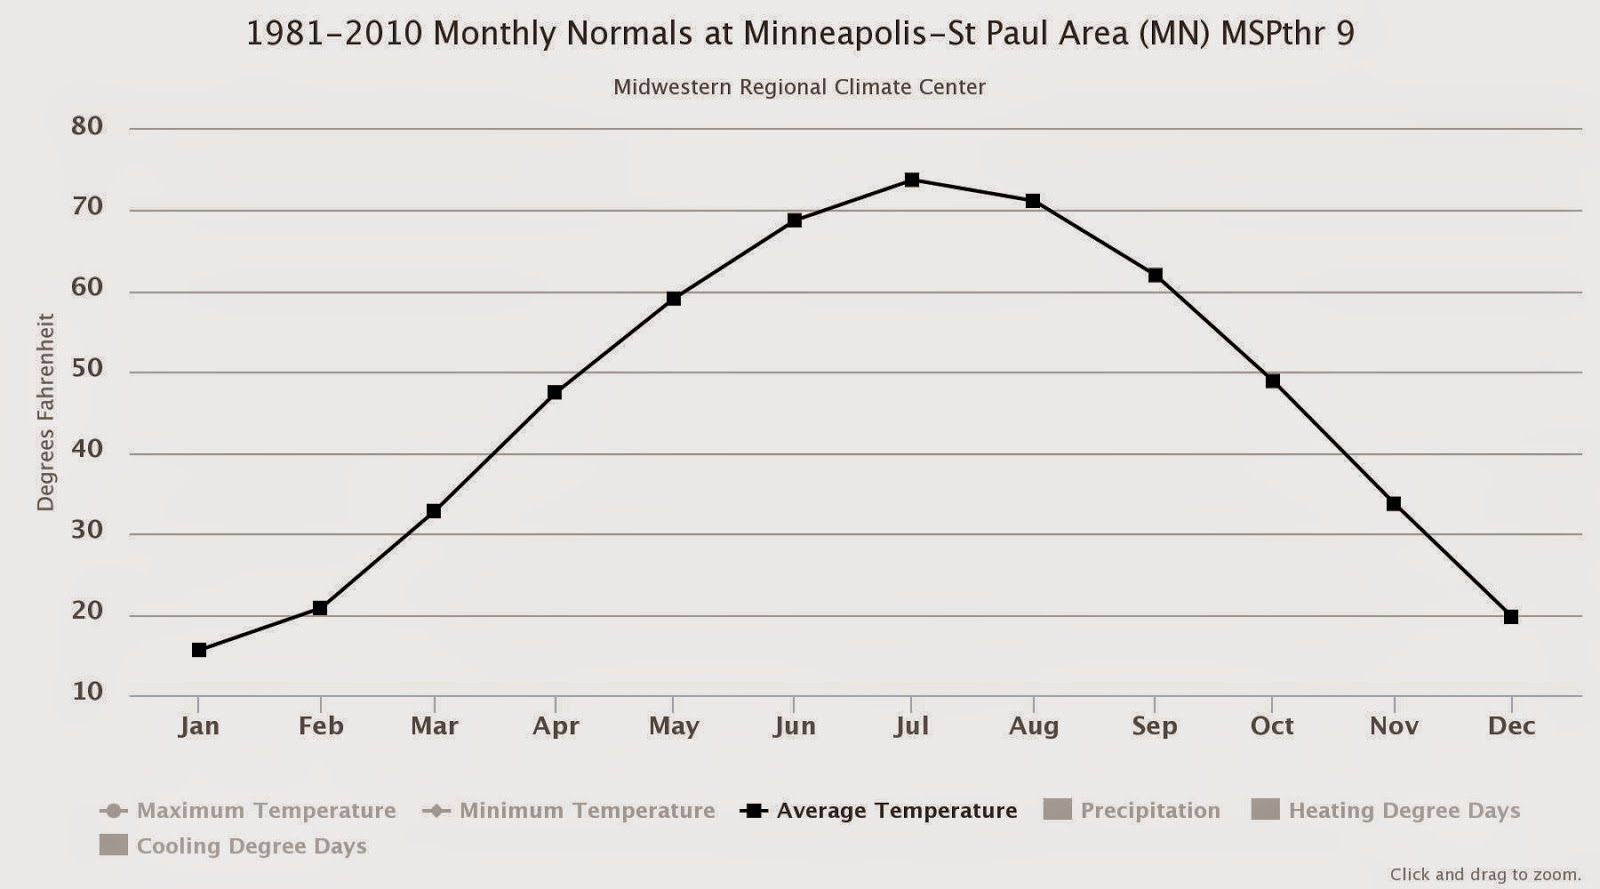 Average temperatures minneapolis - Mean monthly temperatures at minneapolis 1981 2010 from mrcc cli mate